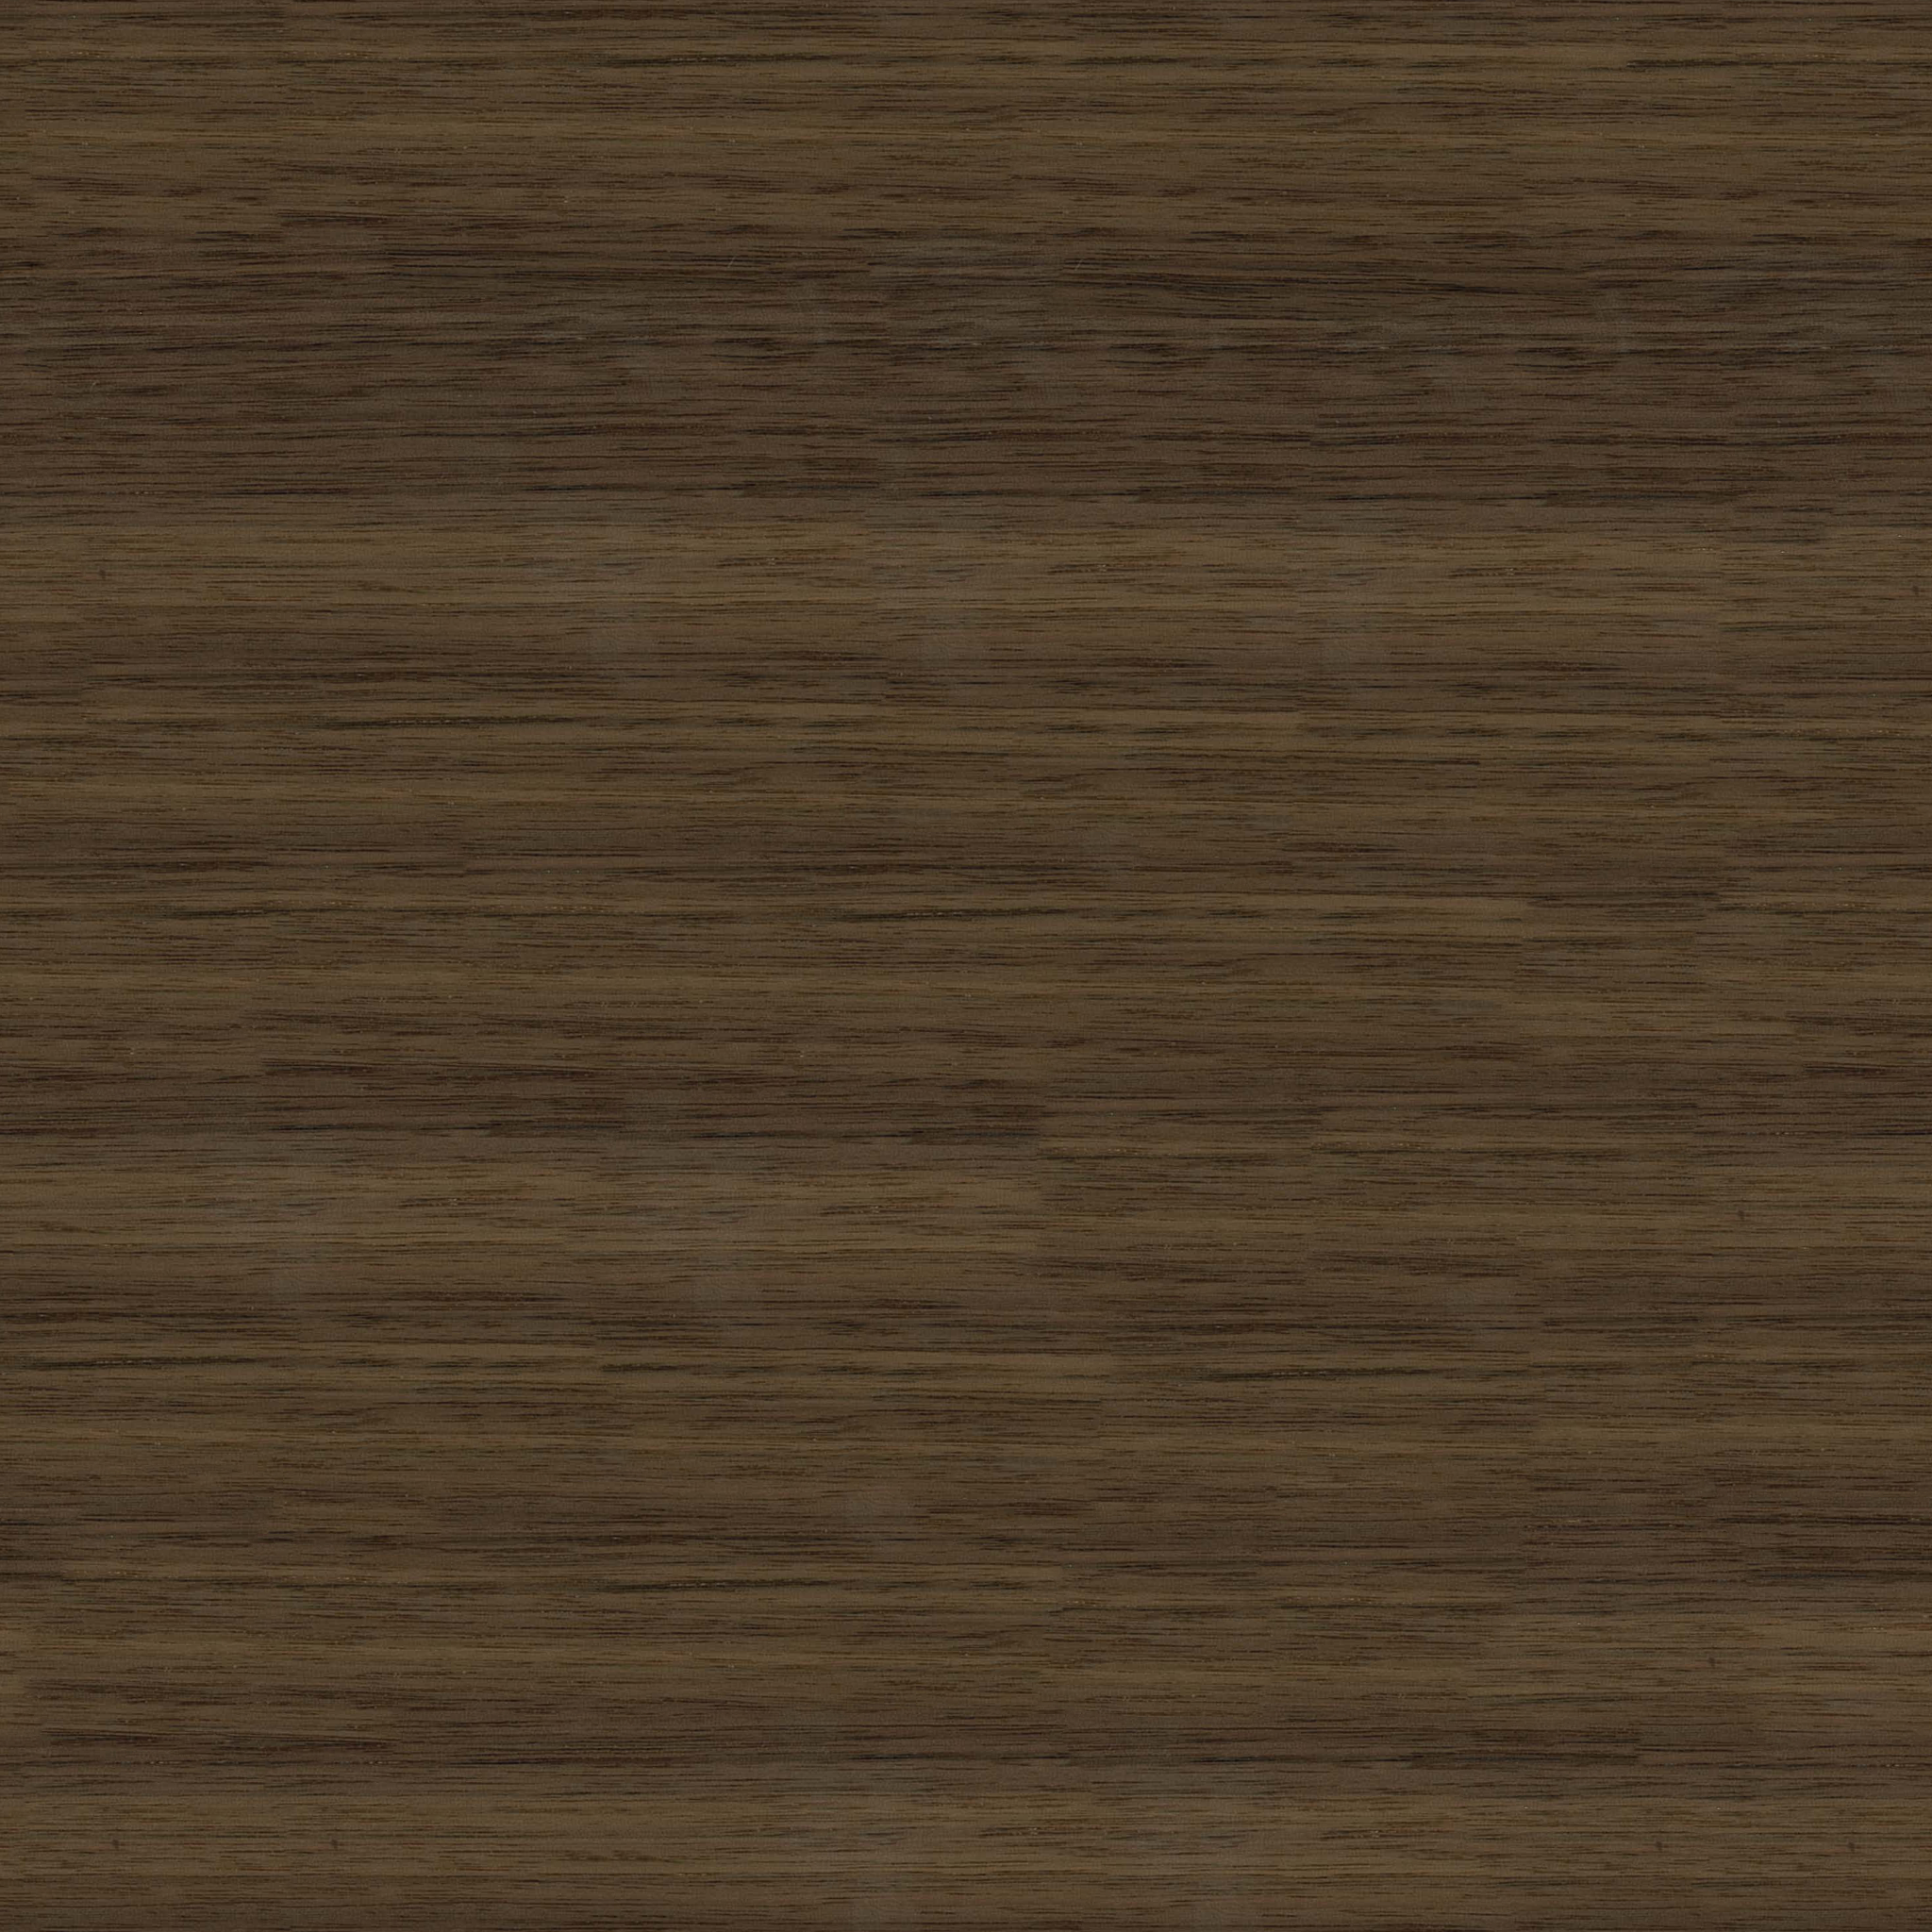 walnut wood veneer | Walnut Veneer  Light & Dark | Tom ...